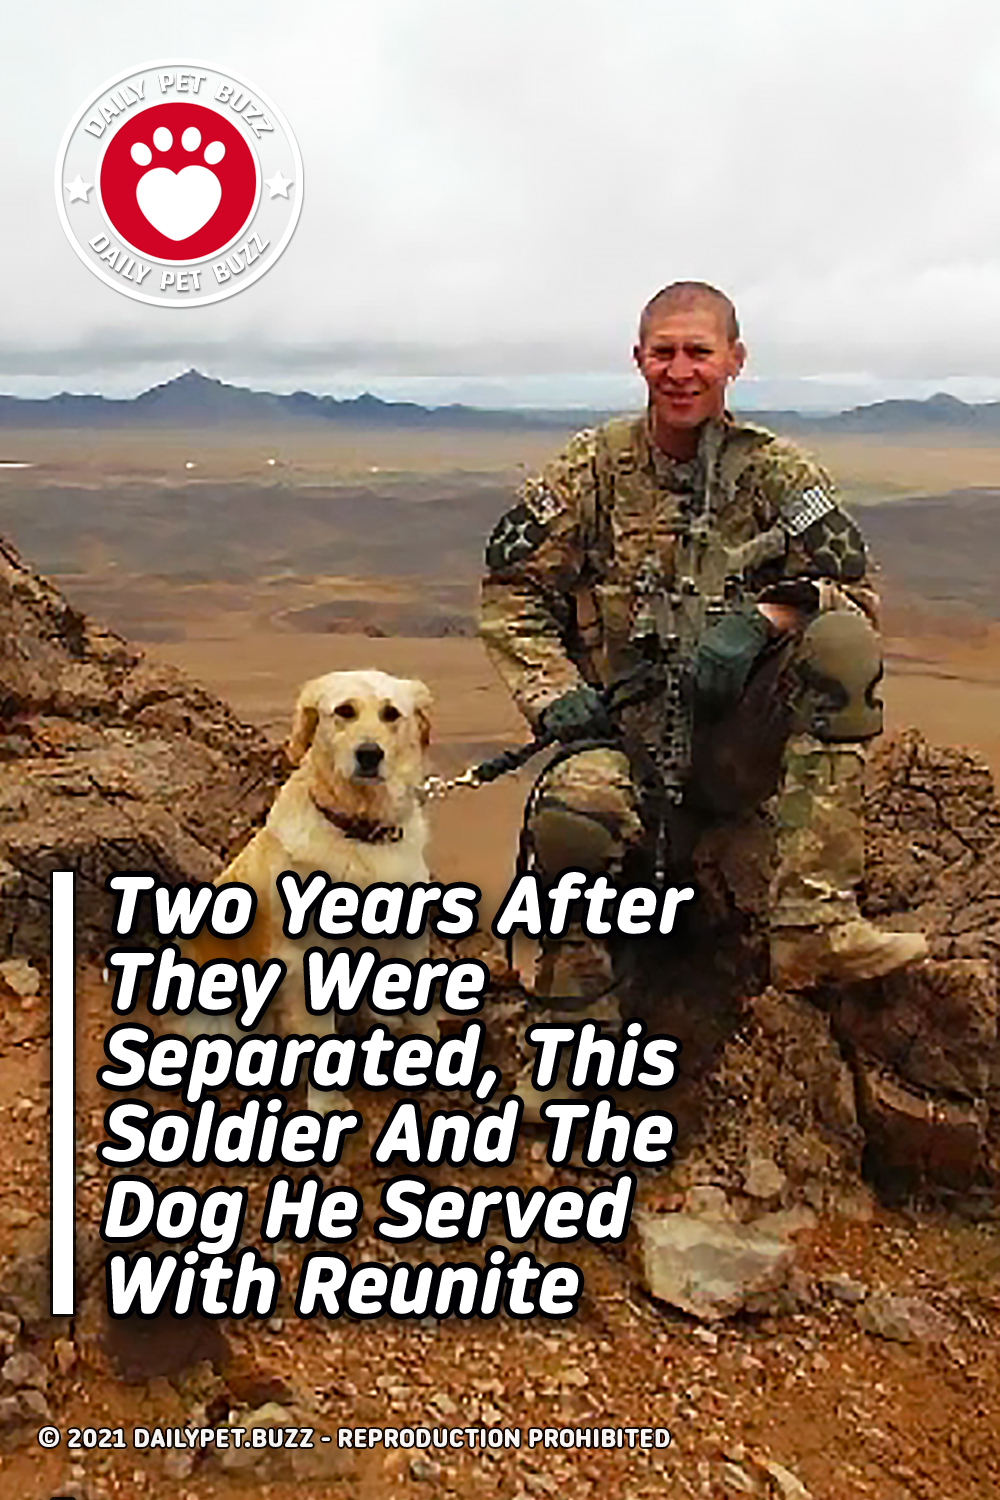 Two Years After They Were Separated, This Soldier And The Dog He Served With Reunite